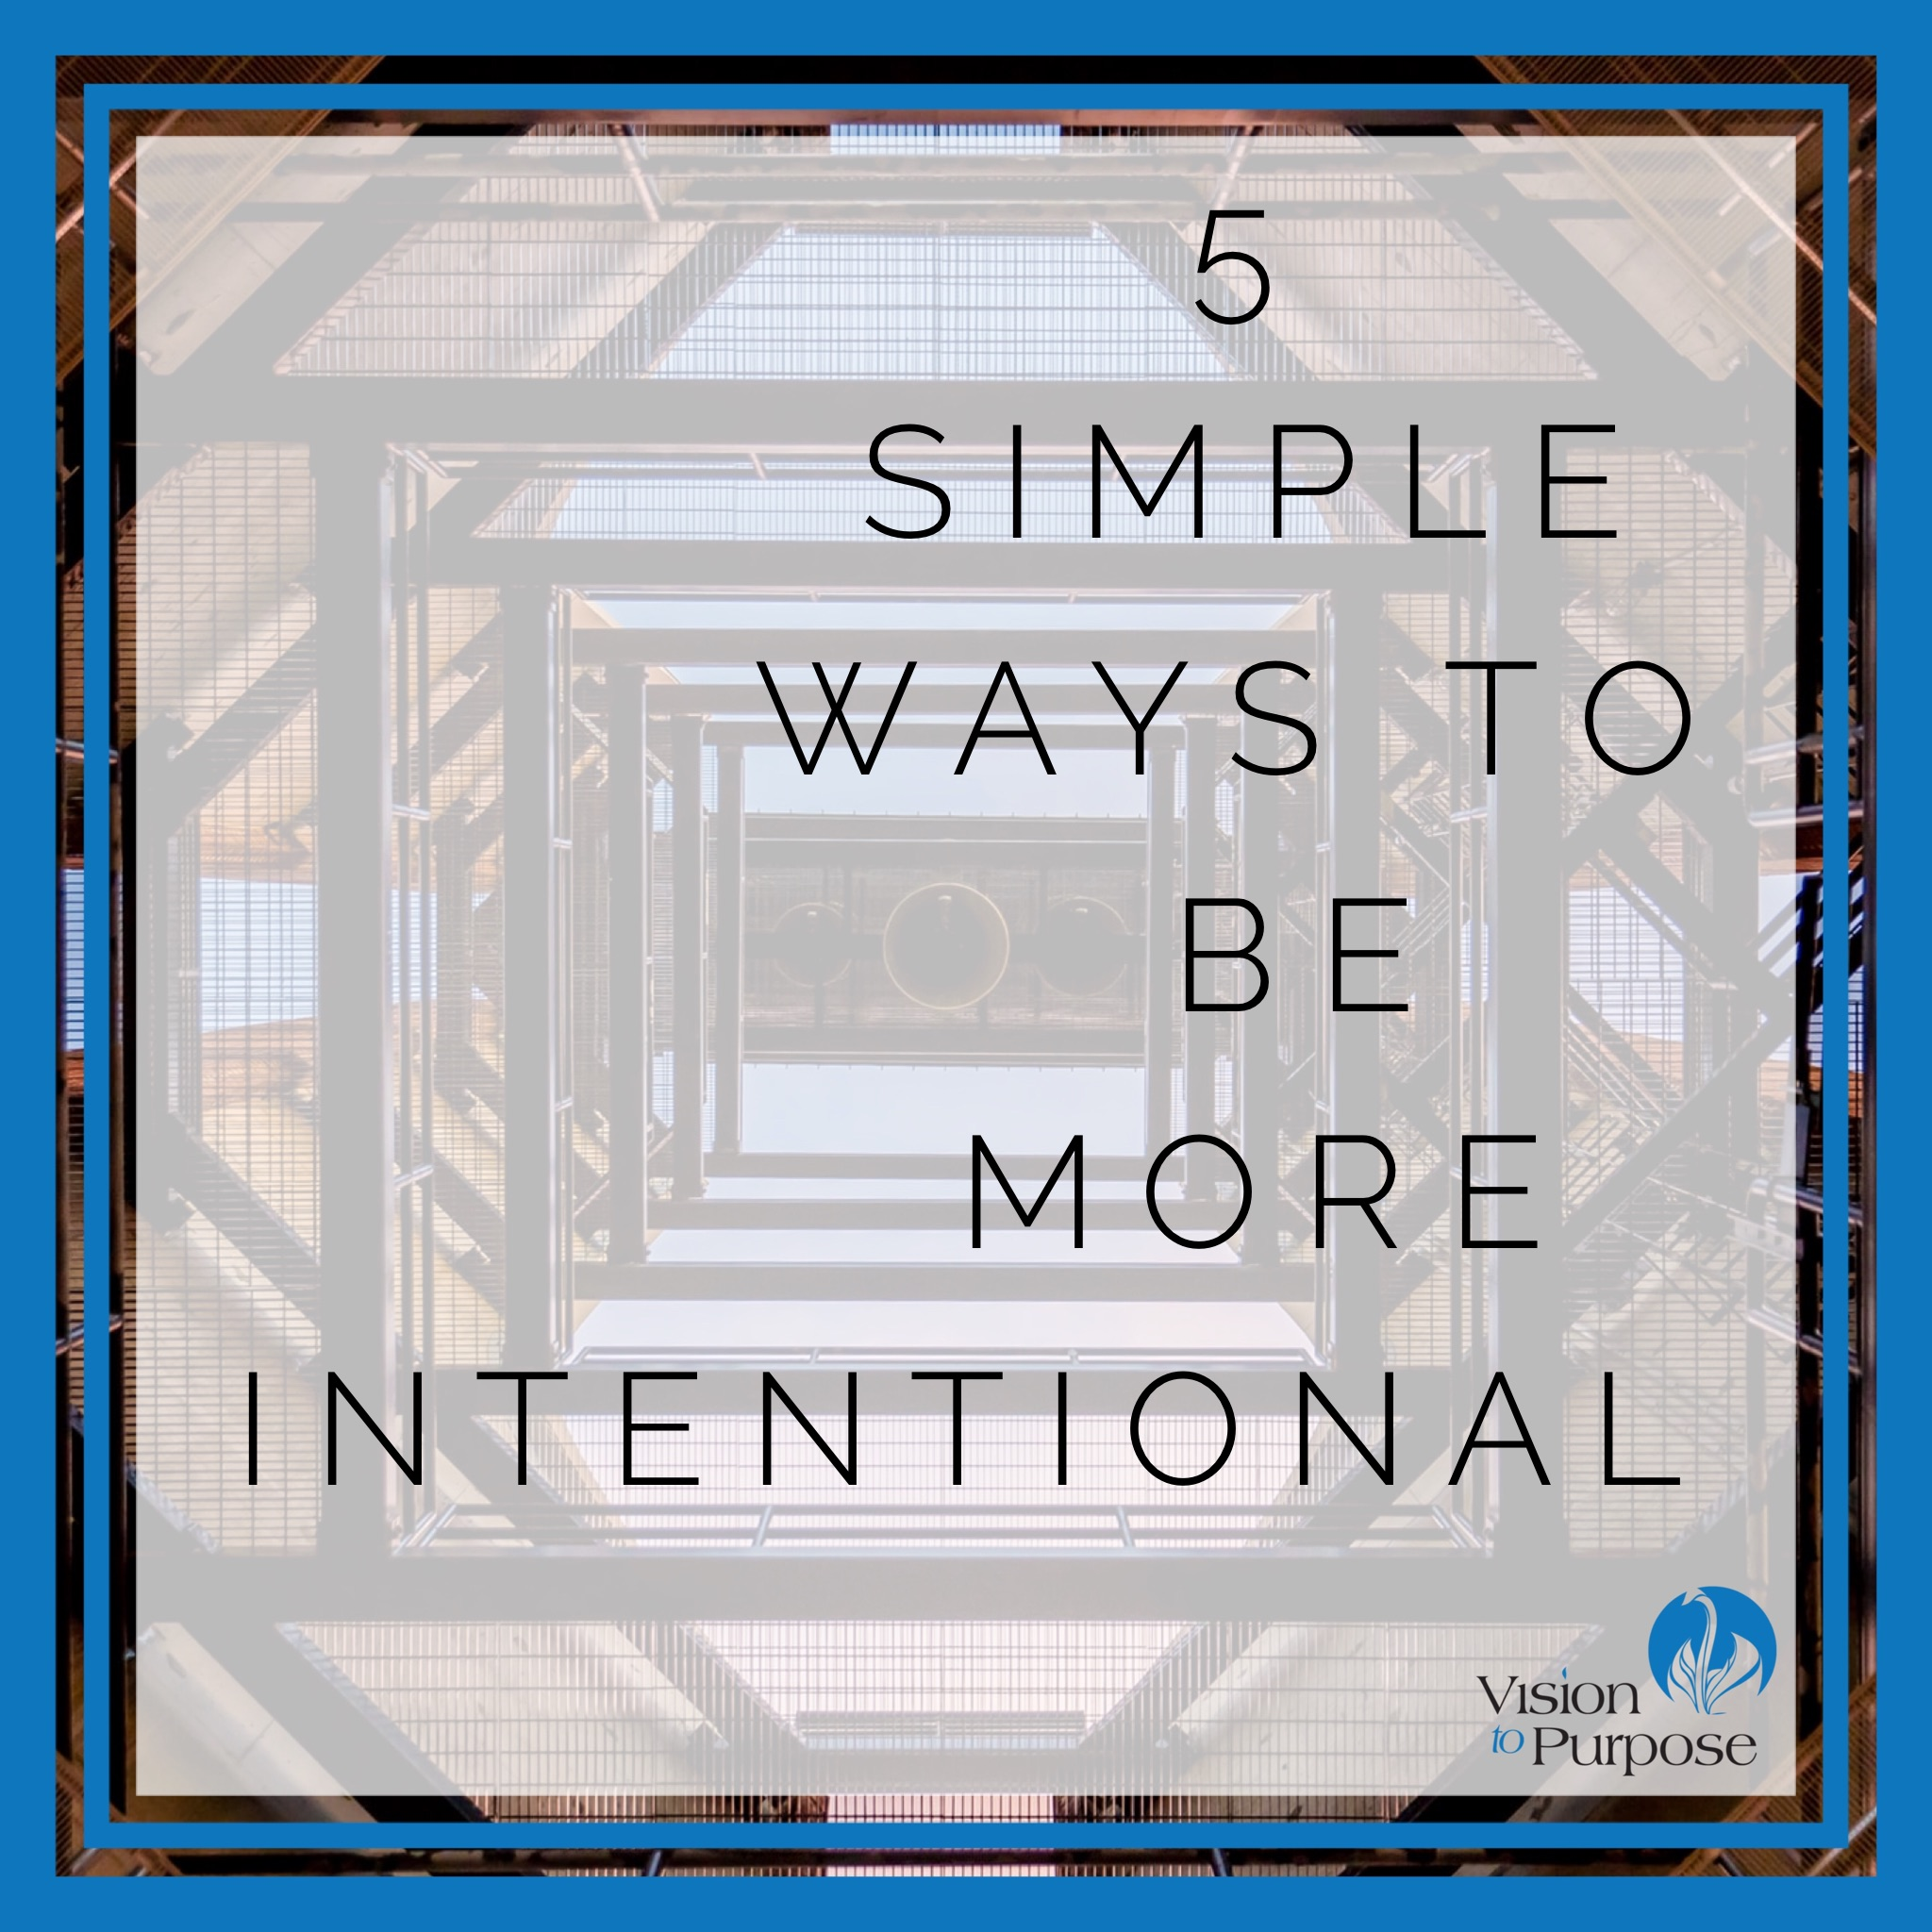 5 simple ways to be more intentional